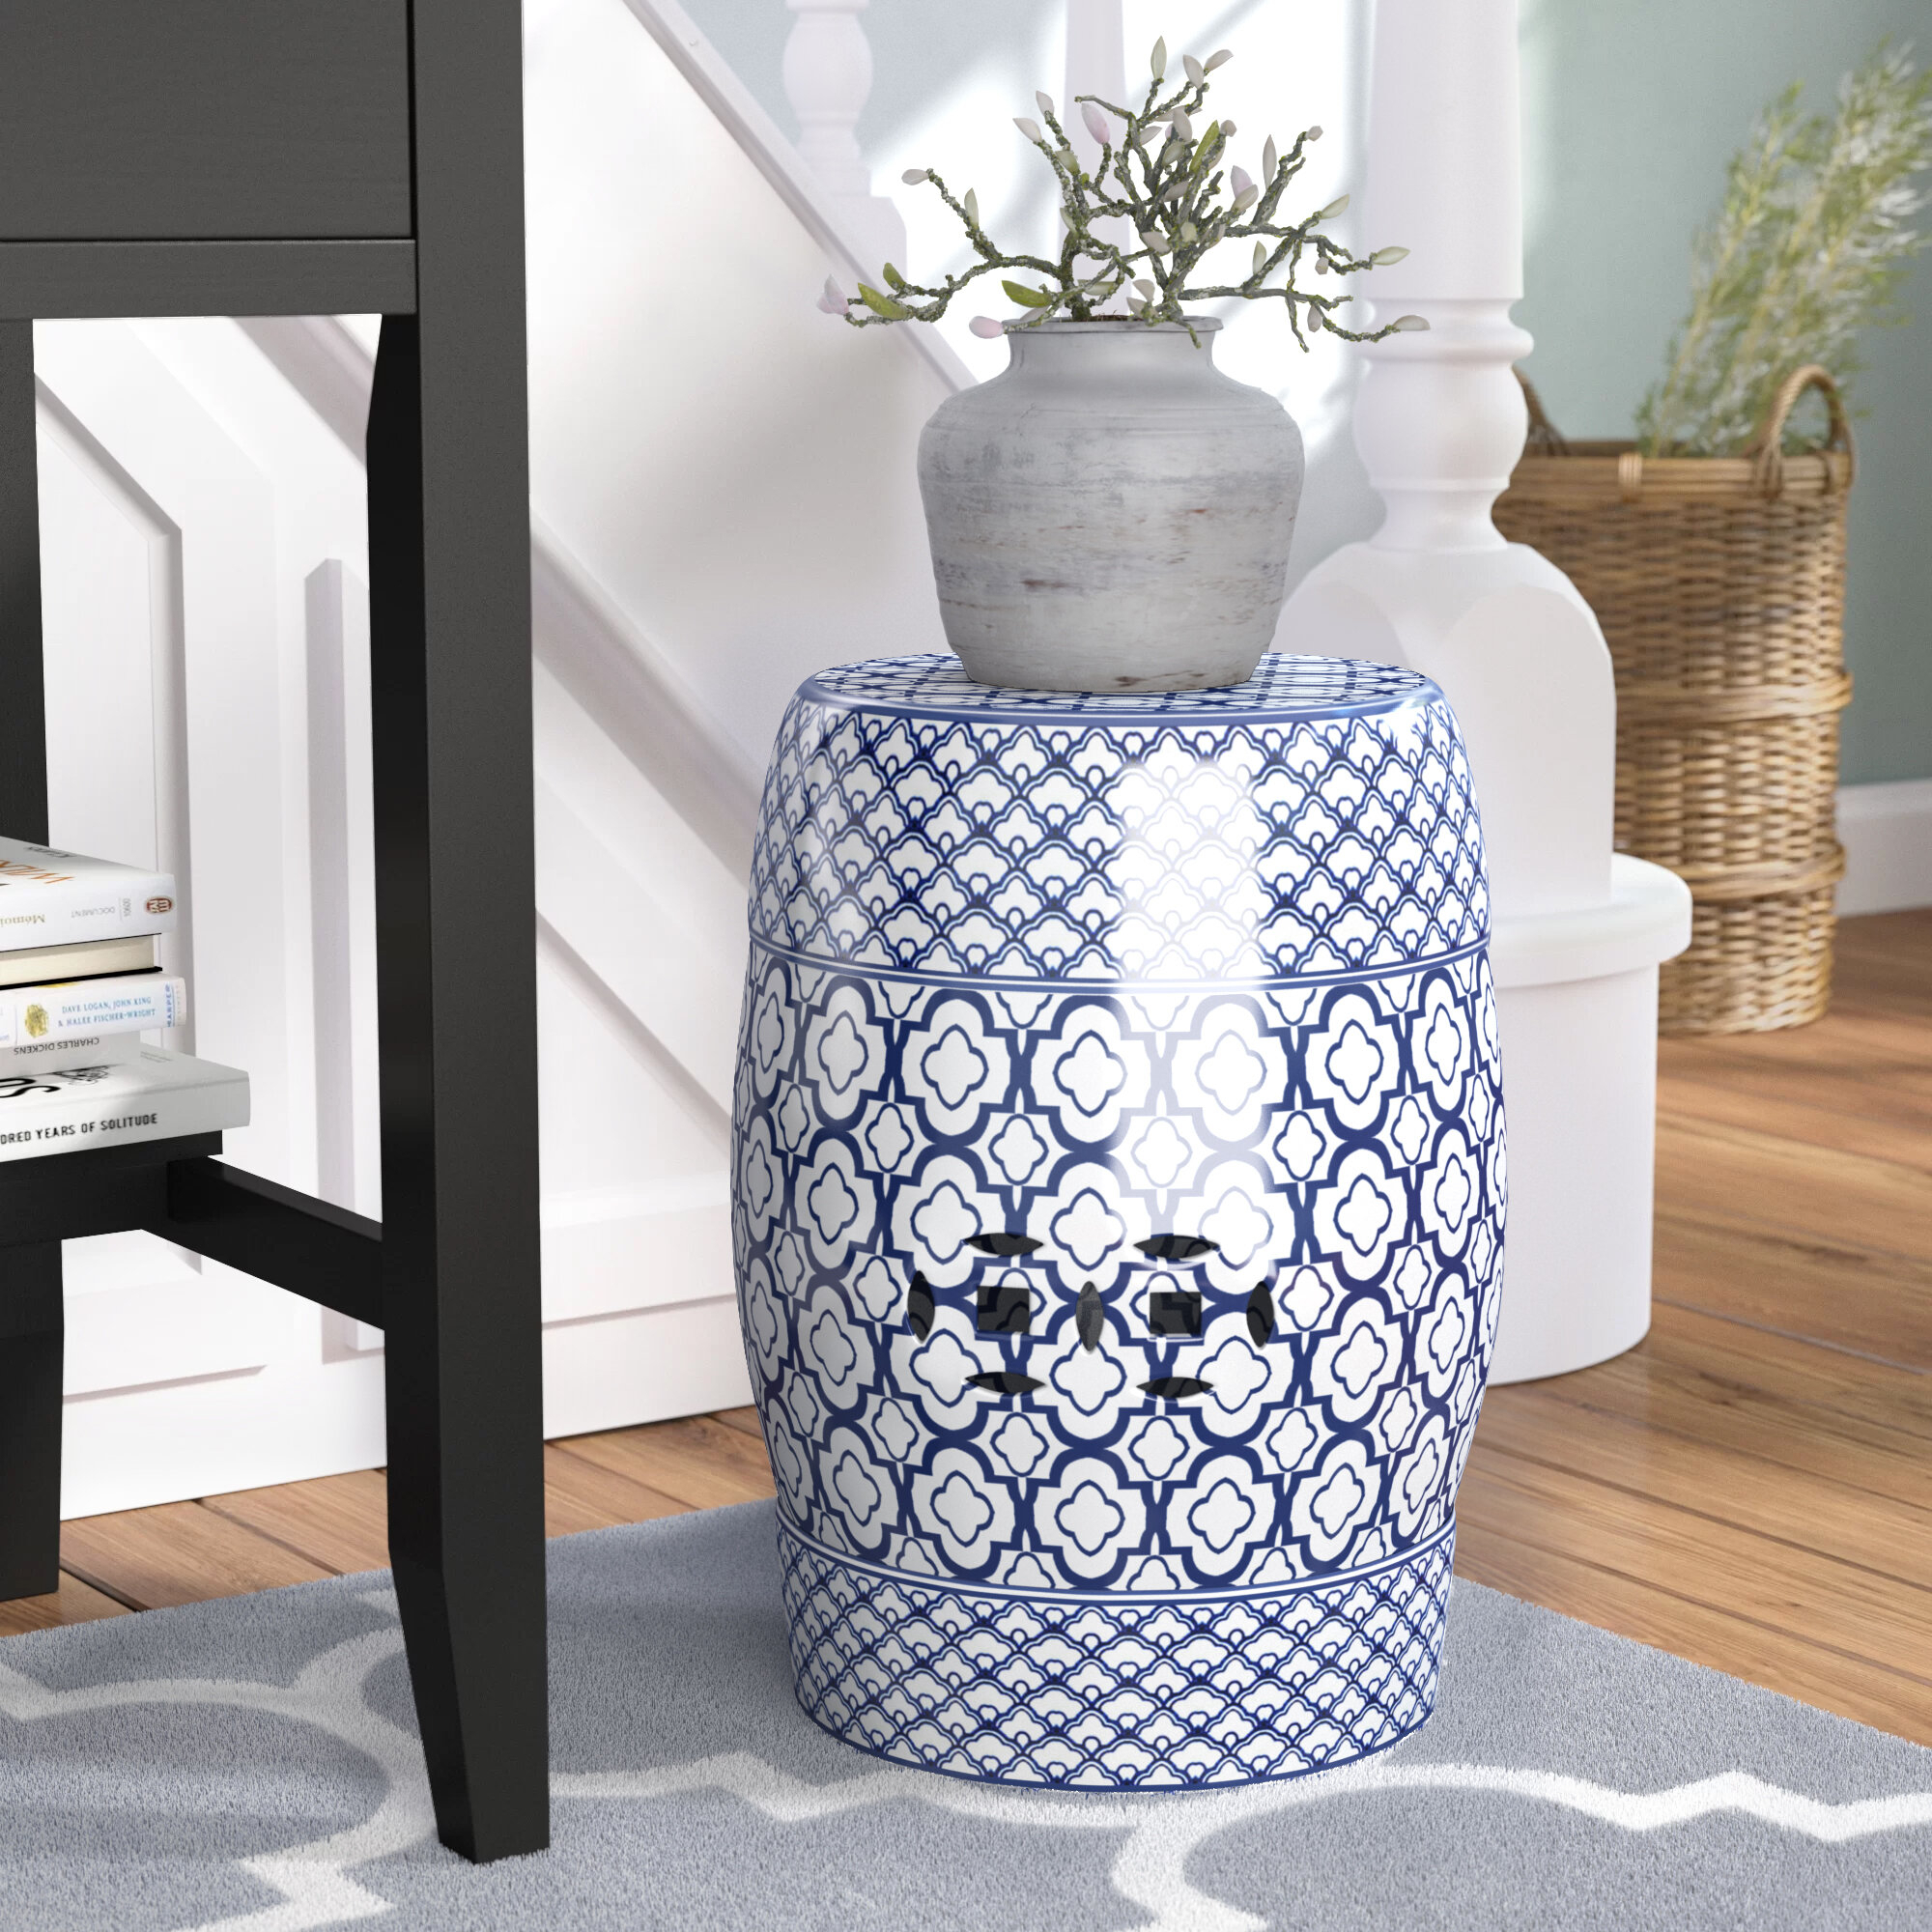 Ceramic Garden Accent Stools You'Ll Love In 2020 | Wayfair With Regard To Aloysius Ceramic Garden Stools (View 2 of 25)